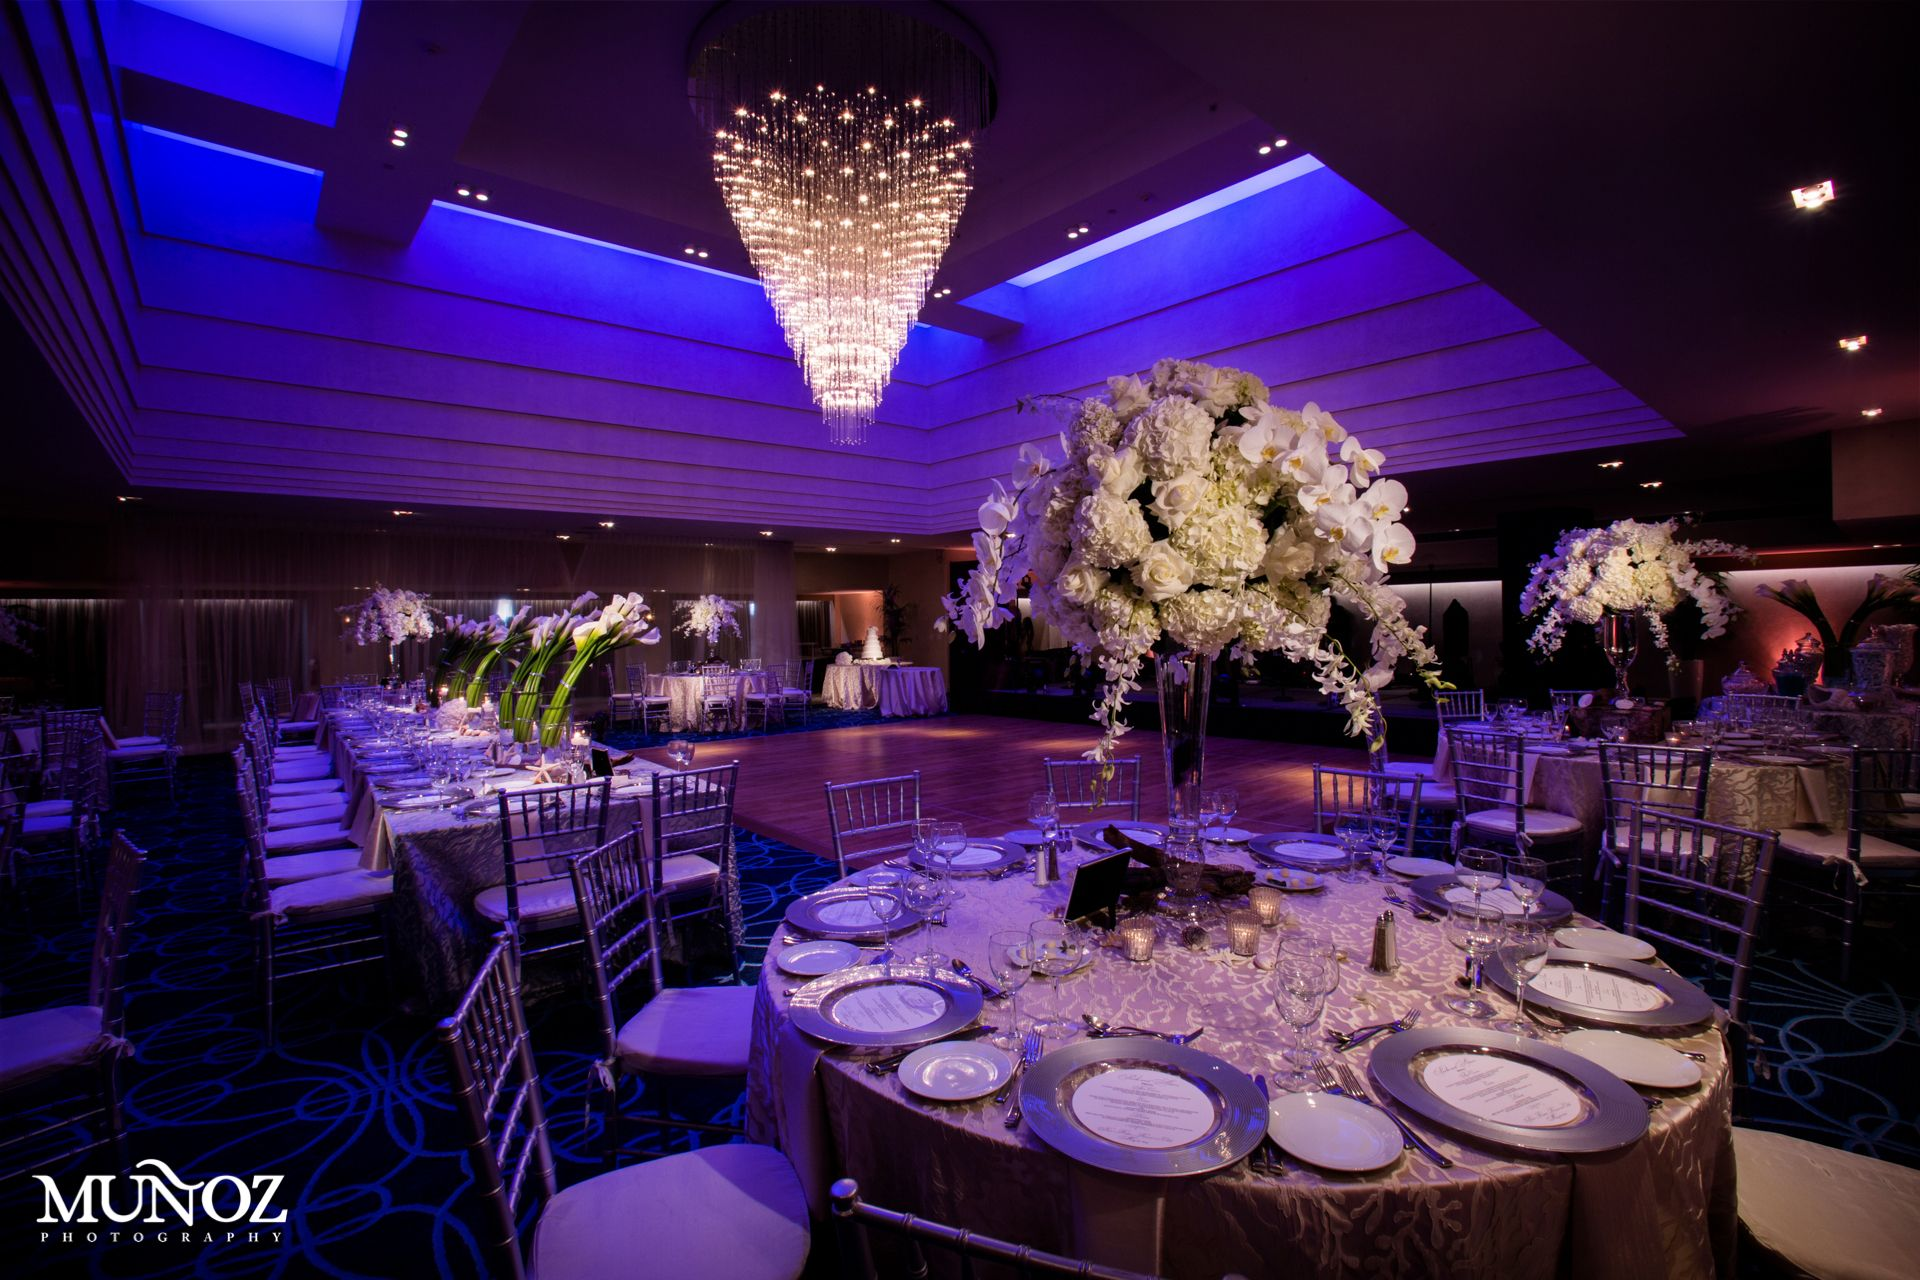 Munoz Photography Captures This Coastal Chic Style In The Dunes At Boca Beach Club